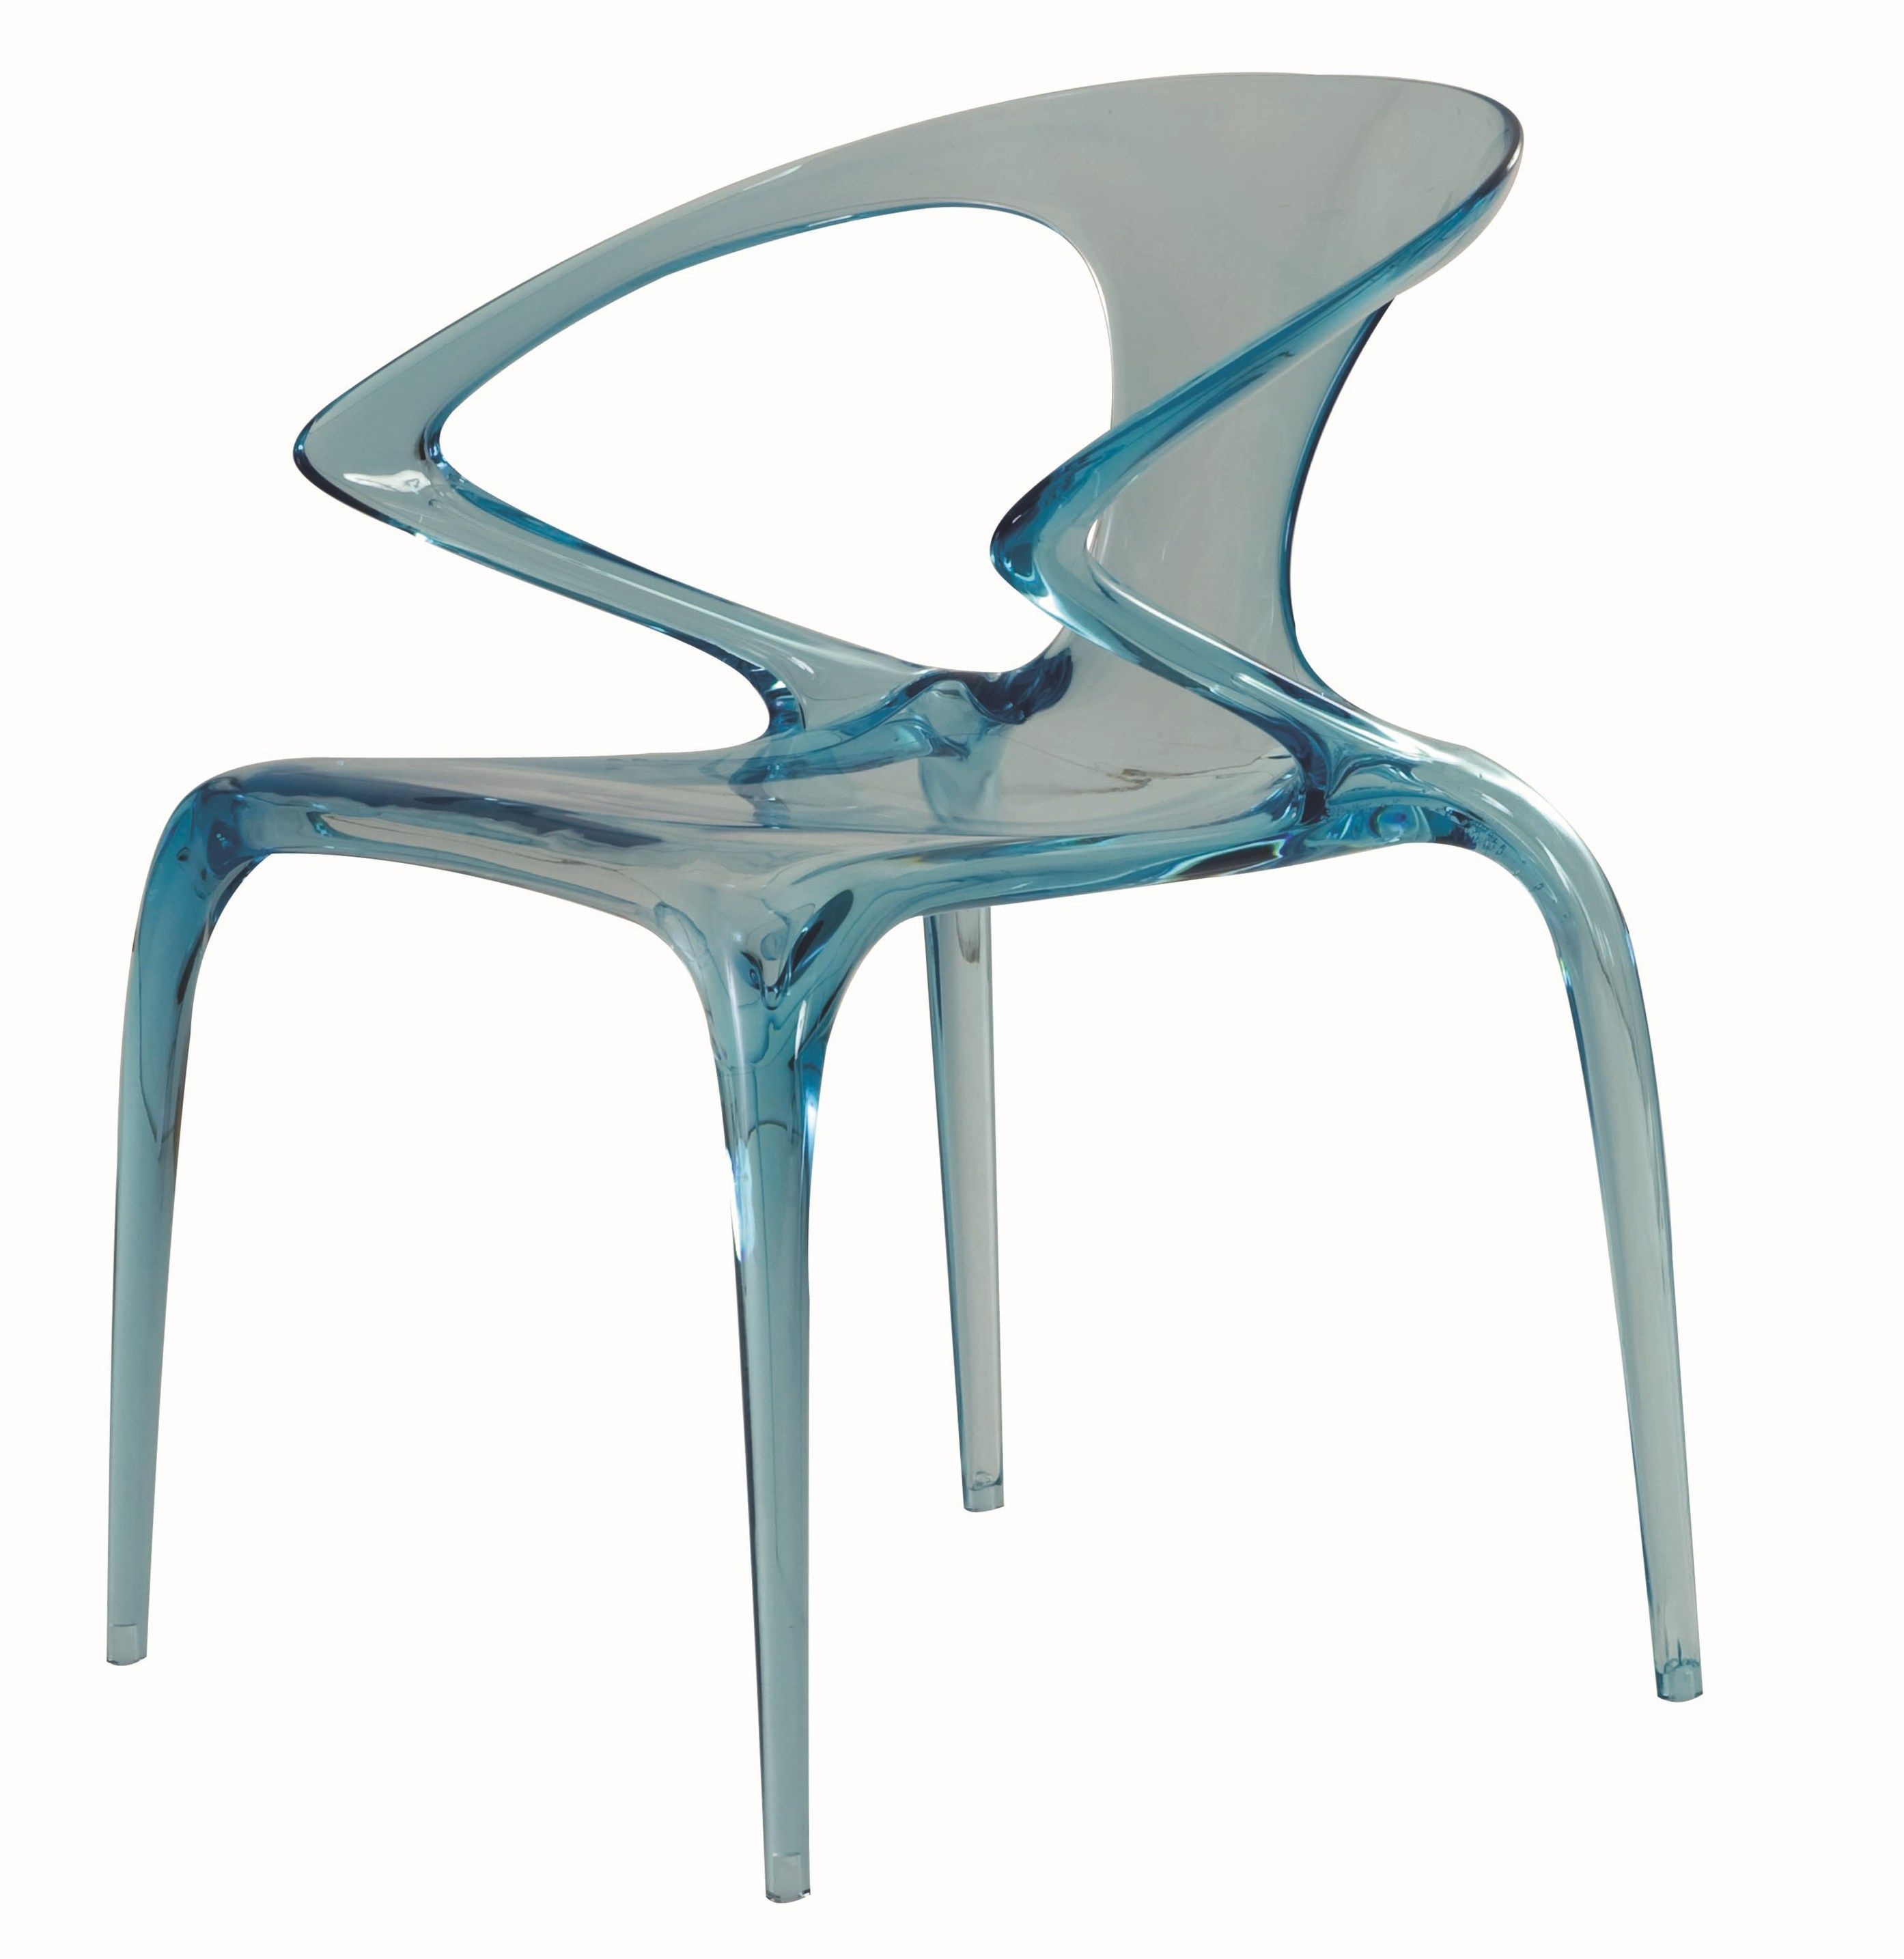 Chaise empilable avec accoudoirs AVA by ROCHE BOBOIS design Song Wen ...